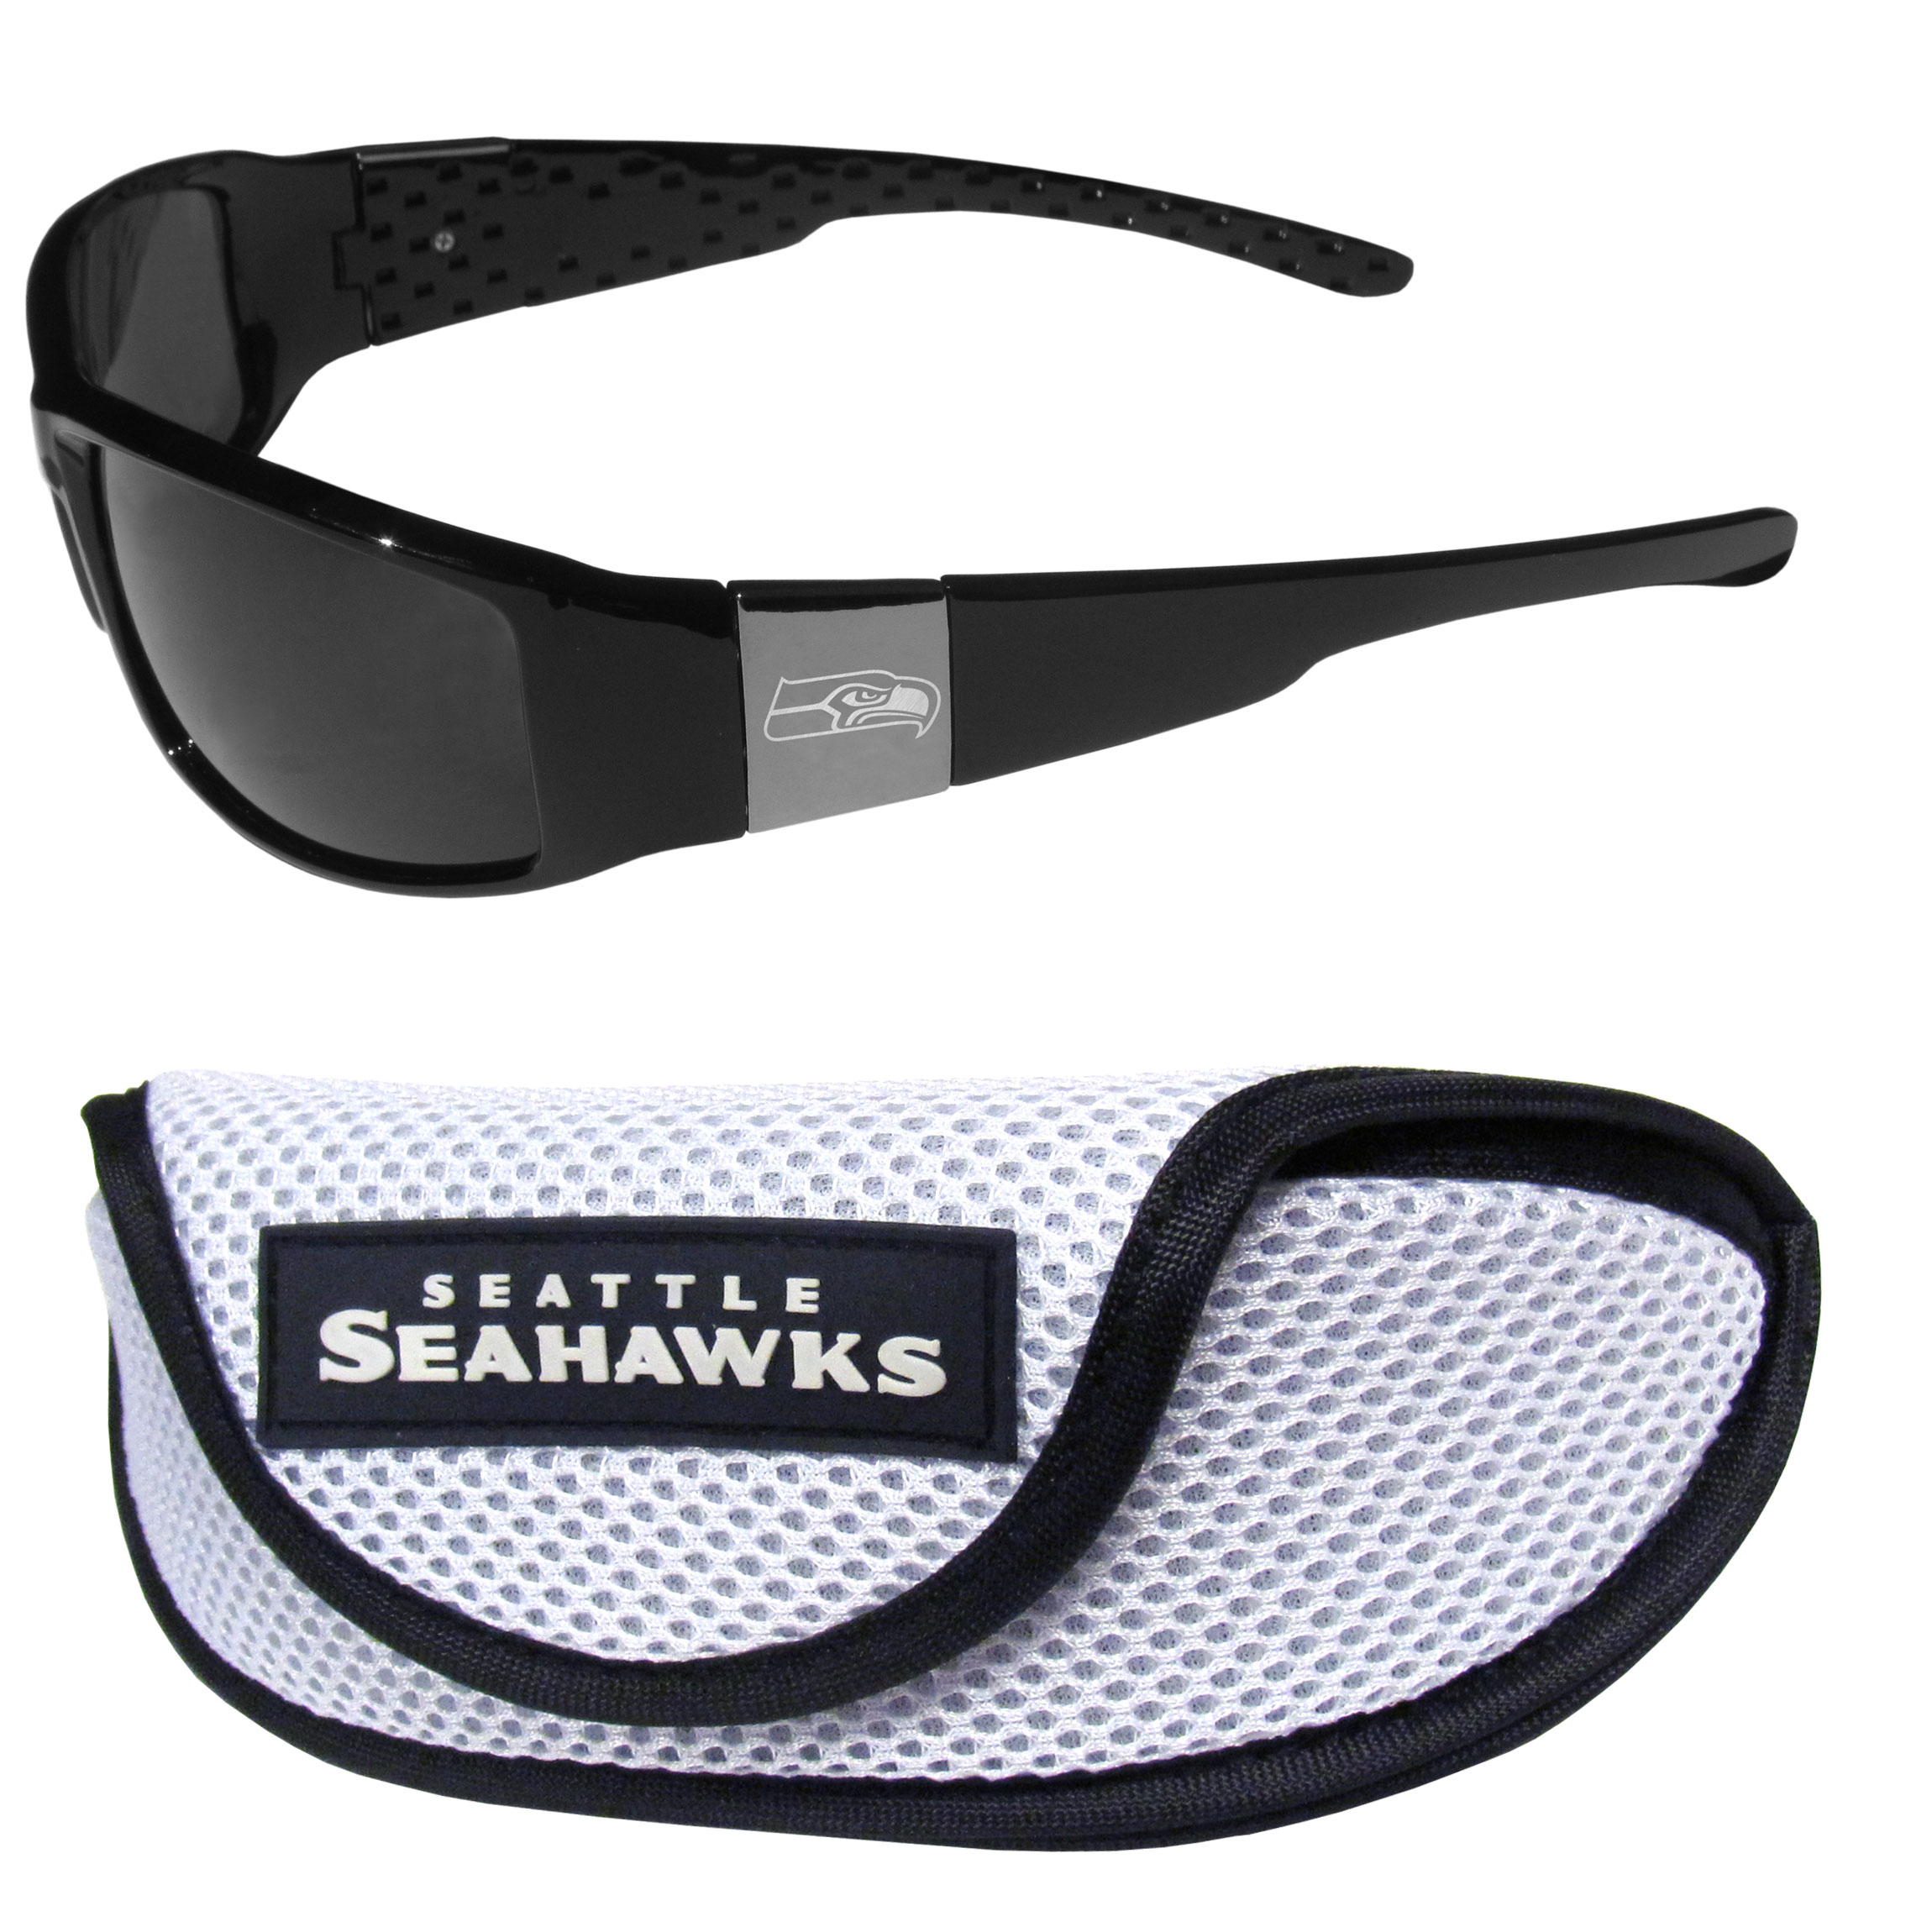 Seattle Seahawks Chrome Wrap Sunglasses and Sports Case - Our sleek and stylish Seattle Seahawks chrome wrap sunglasses and our sporty mesh case. The sunglasses feature etched team logos on each arm and 100% UVA/UVB protection. The case features a large and colorful team emblem.